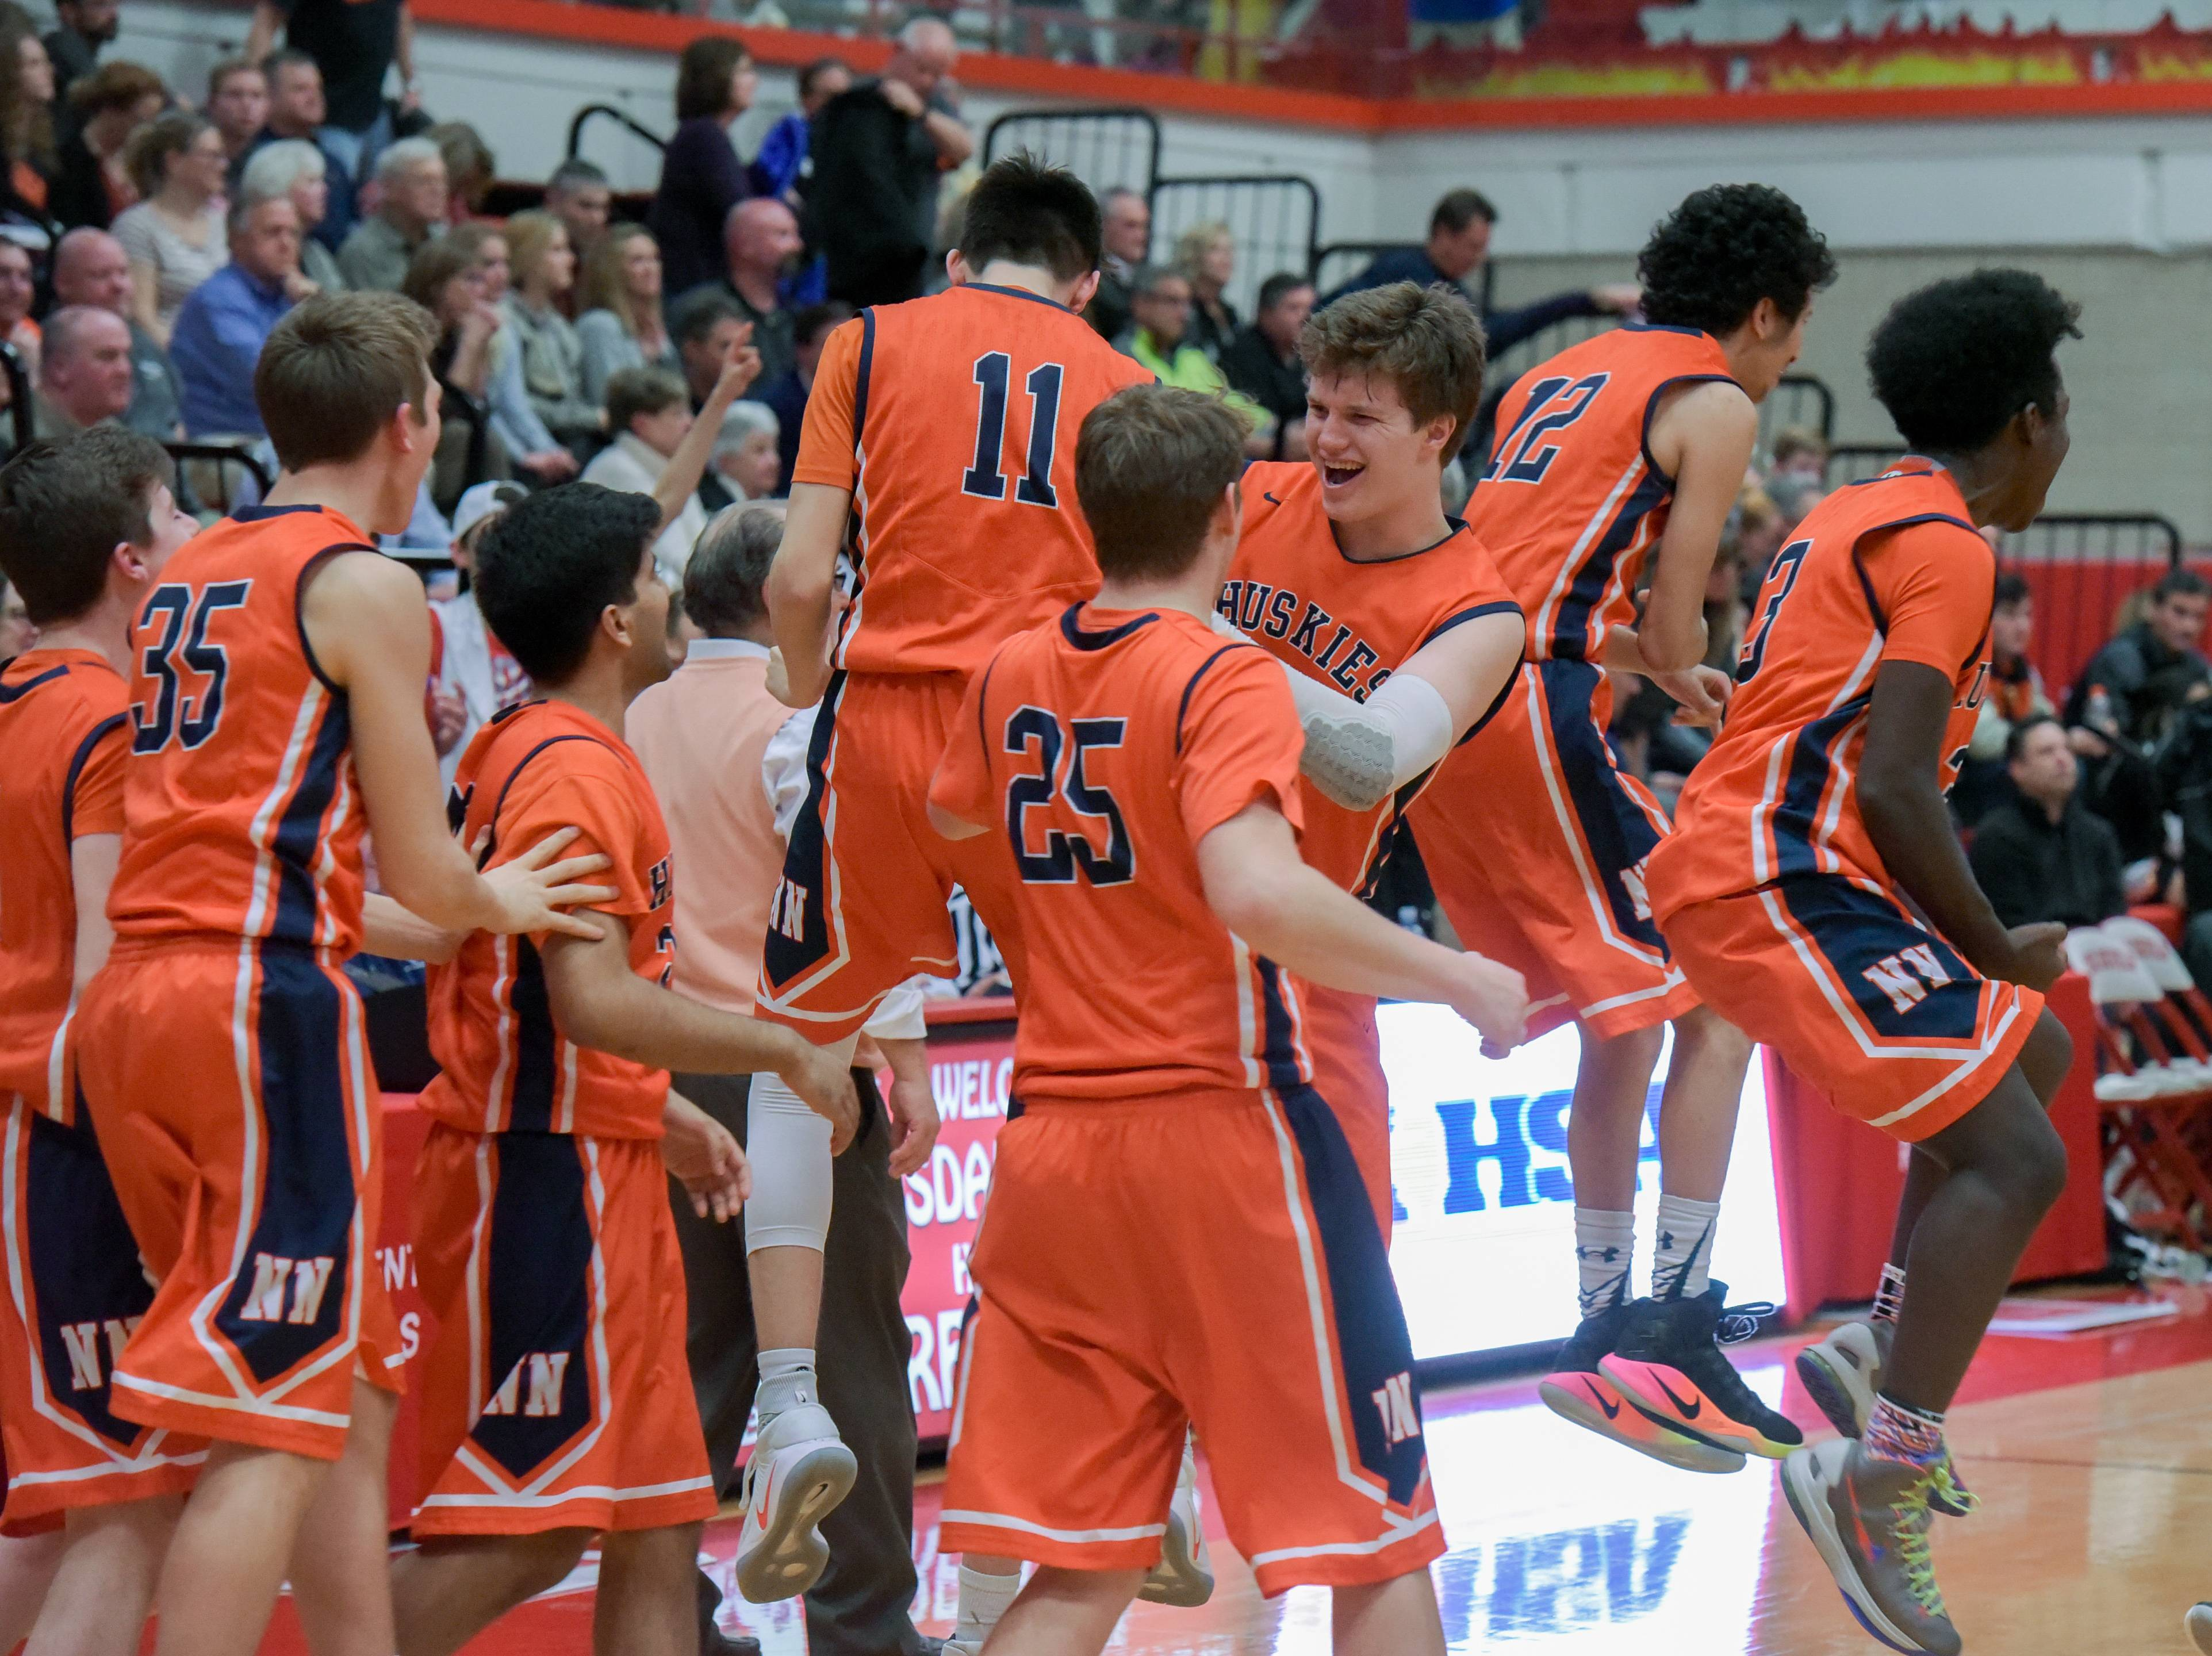 Naperville North celebrate defeating Wheaton Warrenville South 40-35 Tuesday during the Hinsdale Central sectional semifinal.